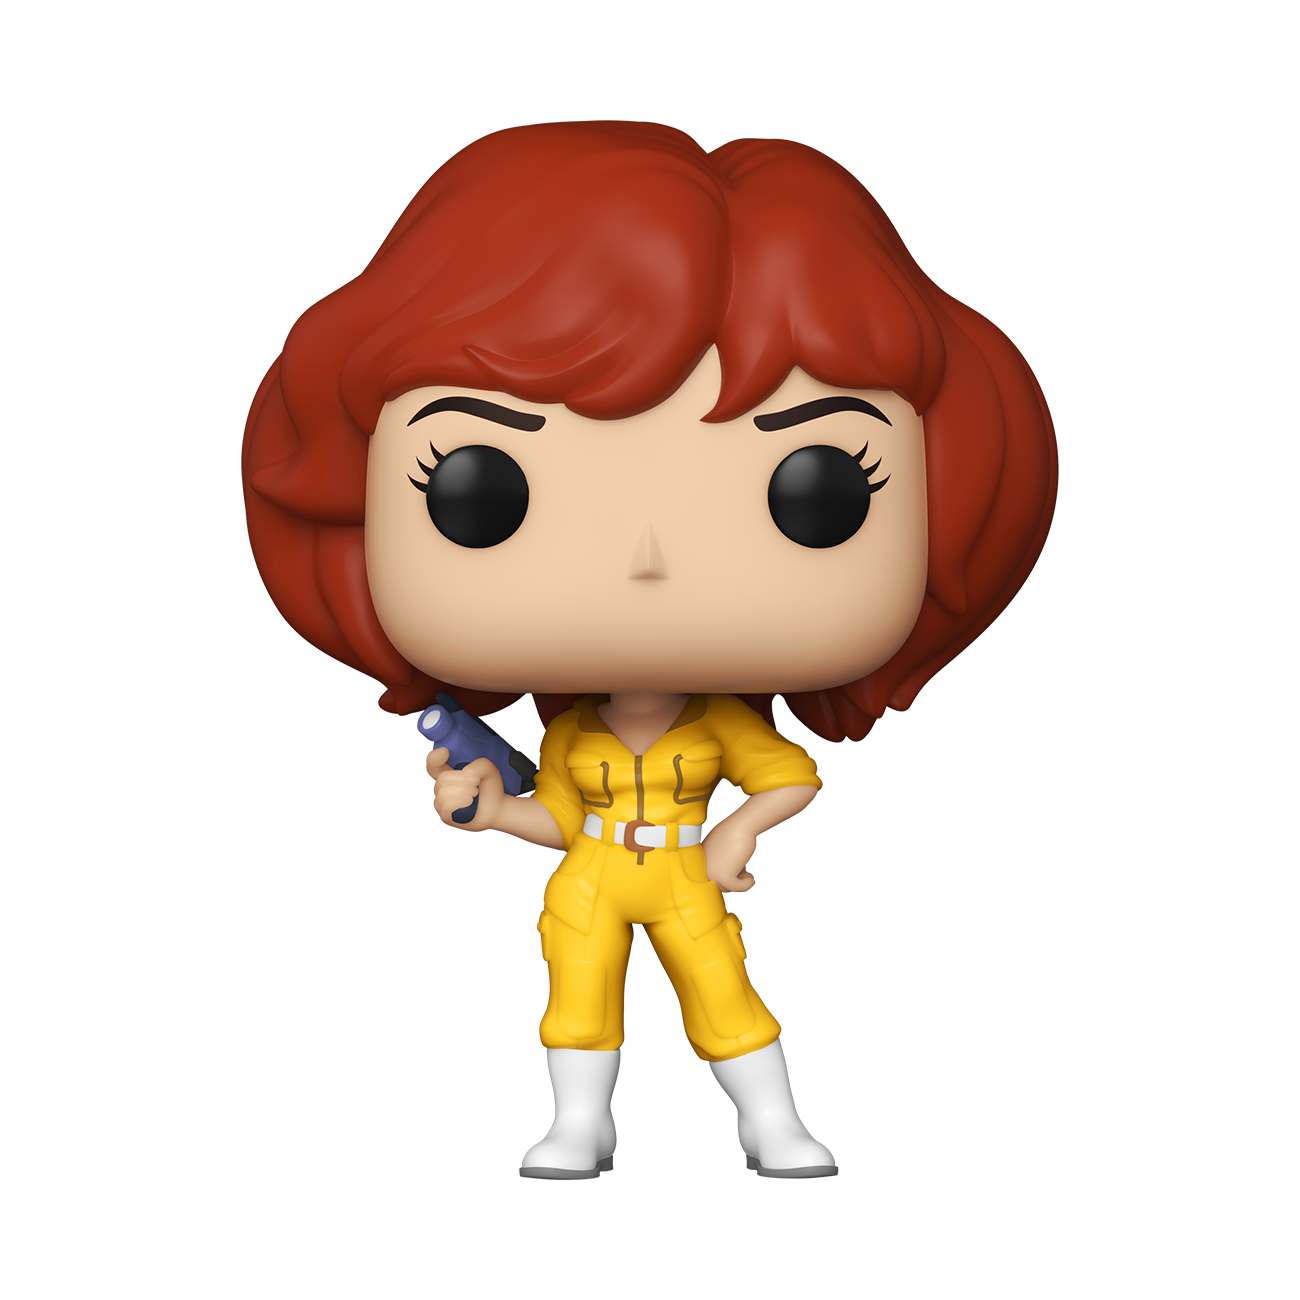 FIGURA POP VINYL: TMNT - APRIL O'NEIL